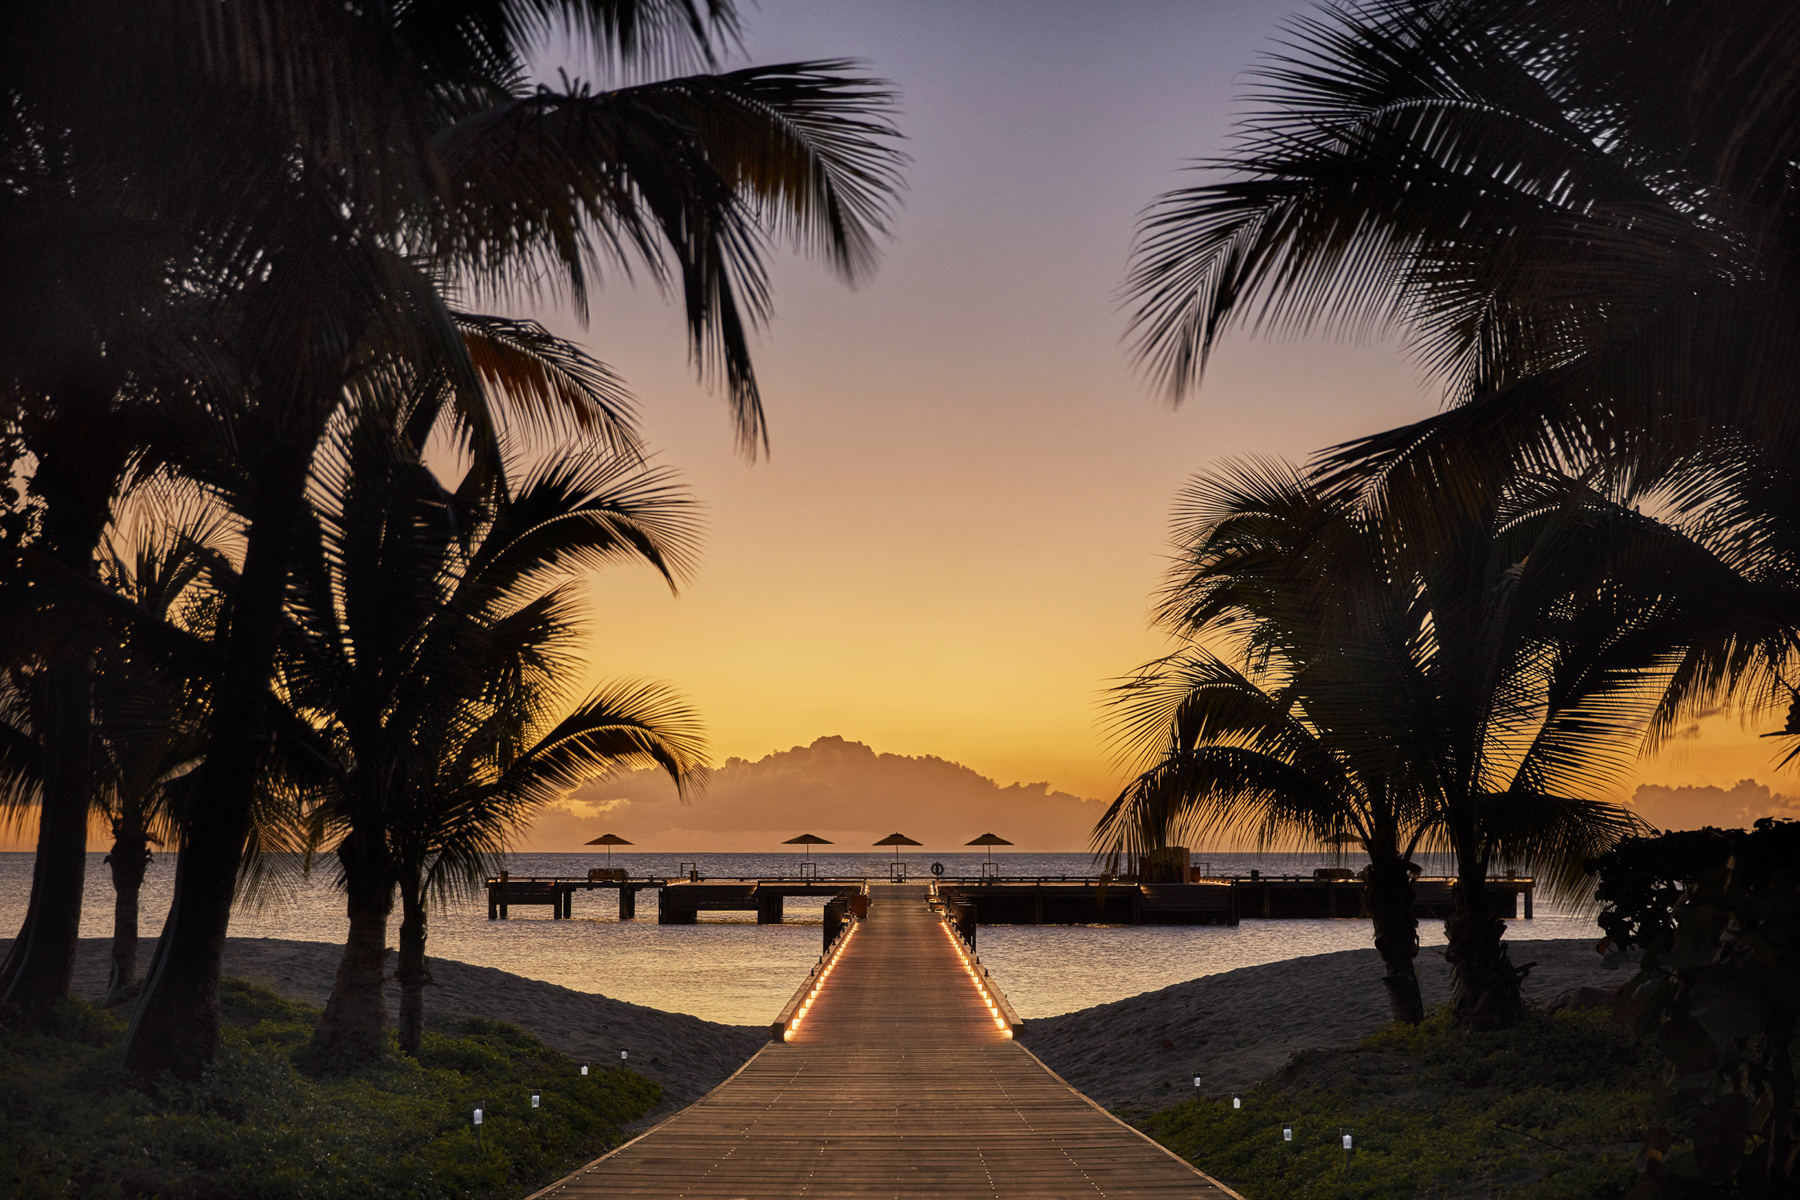 Walkway to overwater dock at sunset